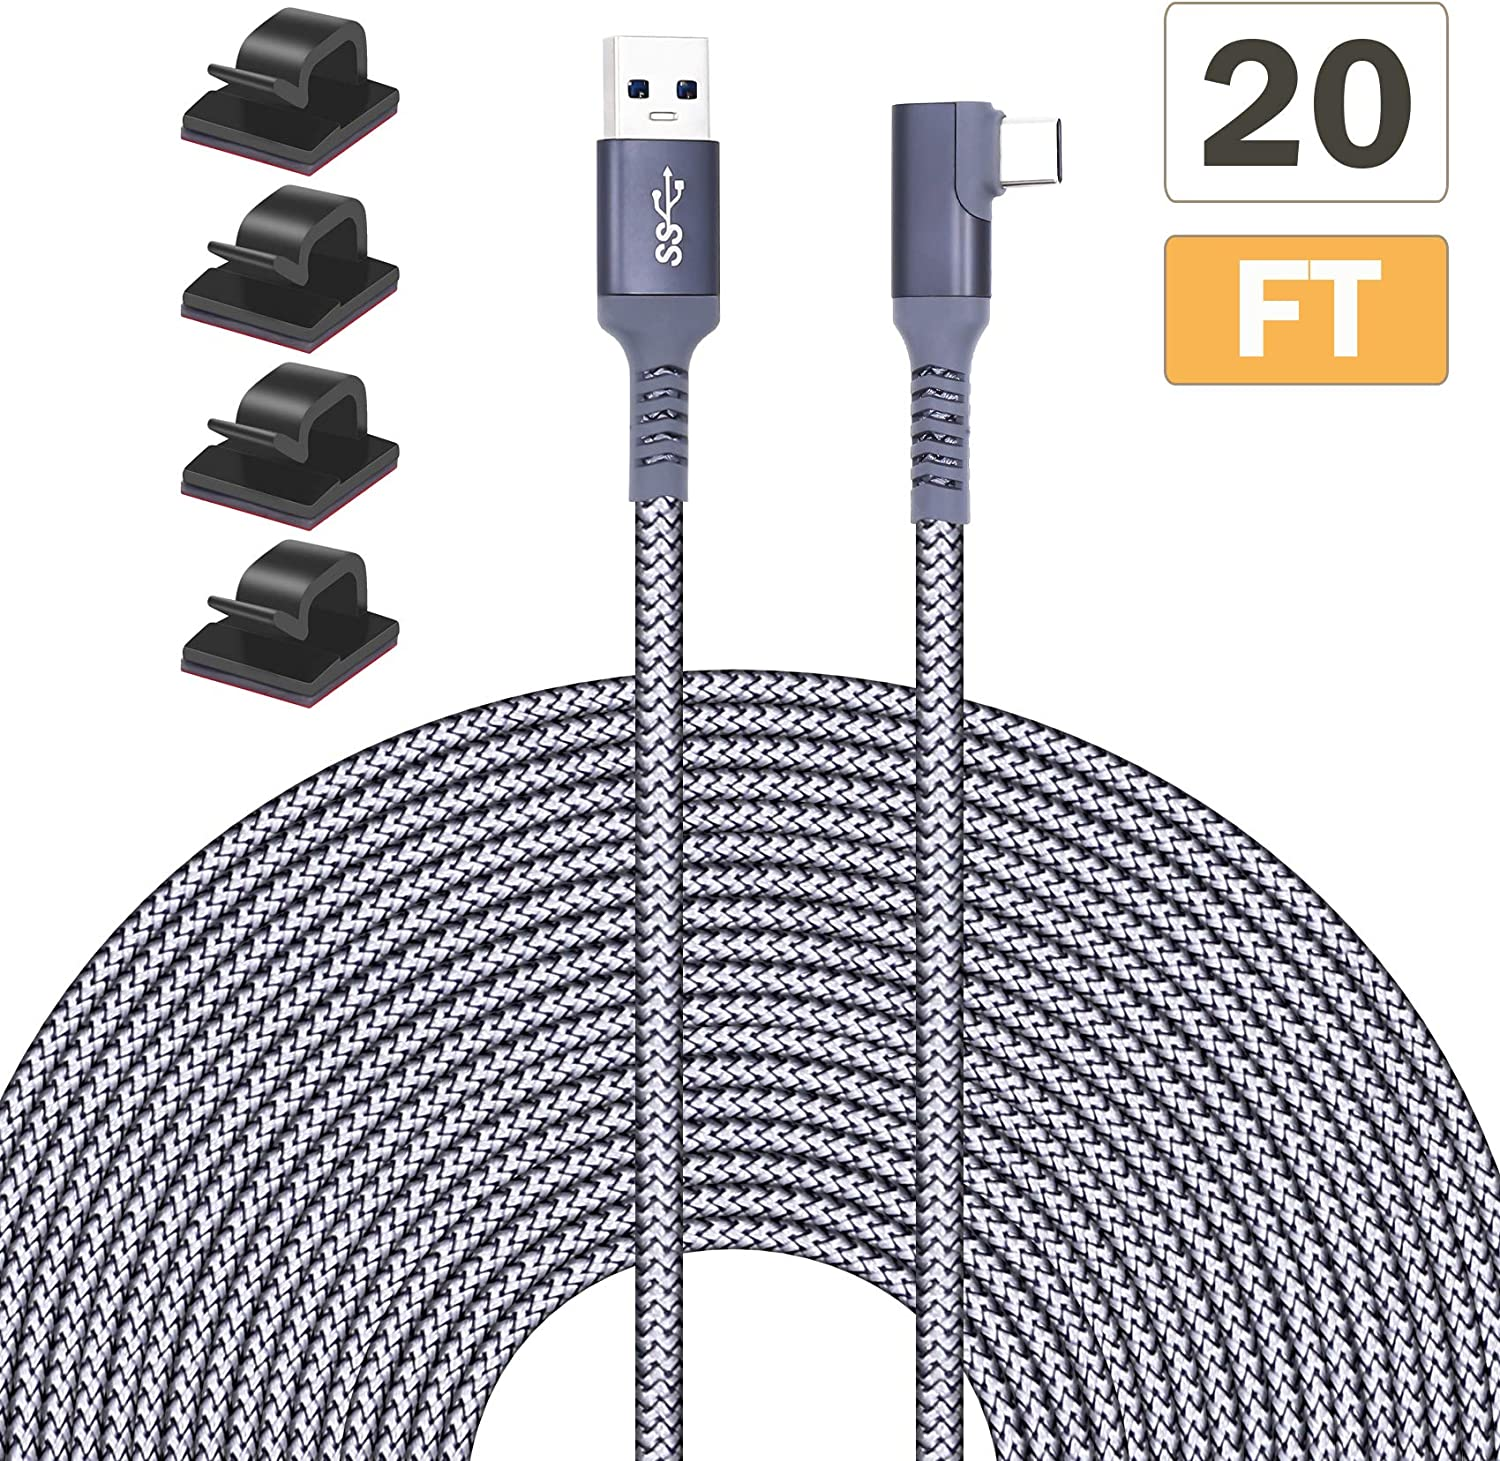 Tanzfrosch 20FT 6M Nylon Braided Link Cable for Oculus Quest 2 Quest 1 VR Headset,Rift S, USB 3.0 Type A to C 5Gbps High Speed Data Transfer Charging Cord